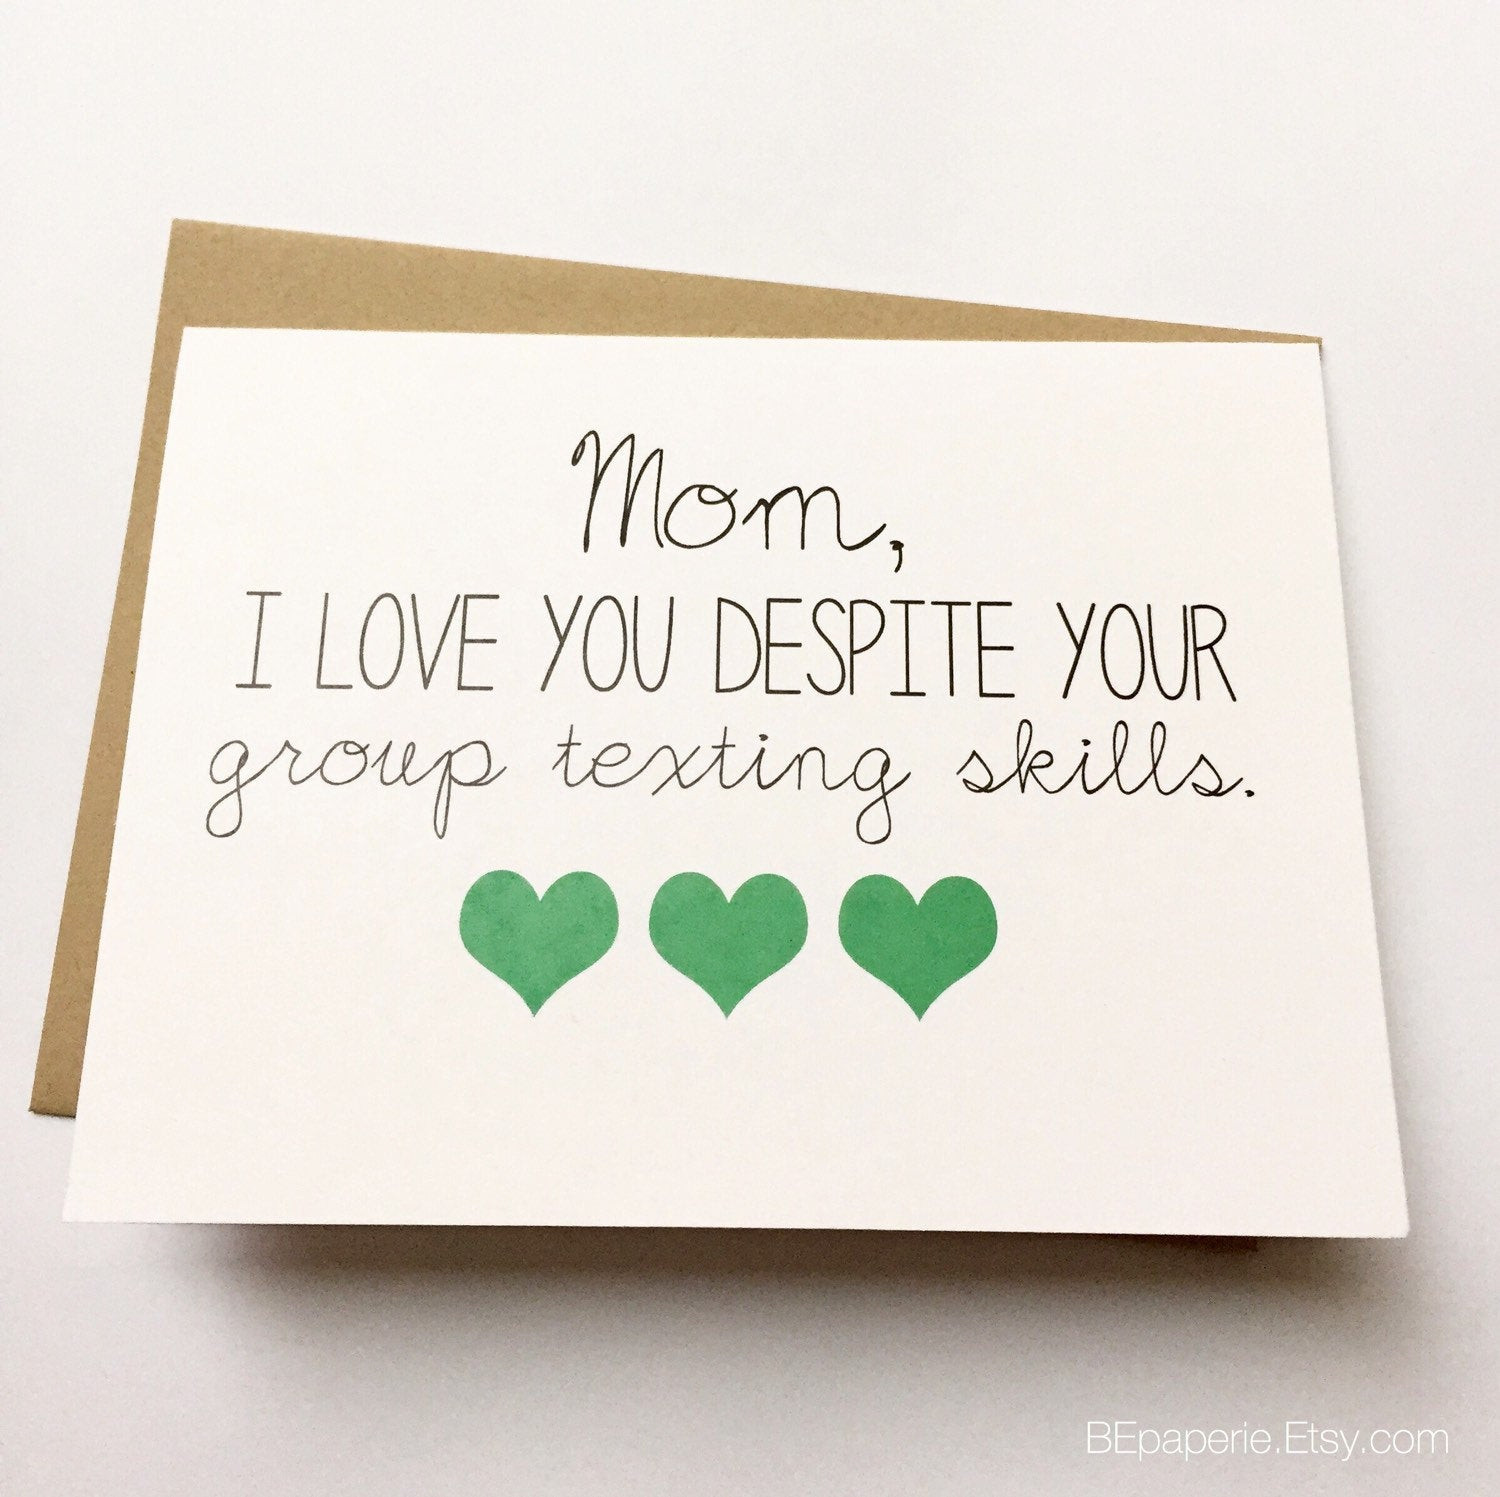 Best ideas about Funny Birthday Cards For Mom . Save or Pin Funny Mom Card Mother s Day Card Mom Birthday Card Now.